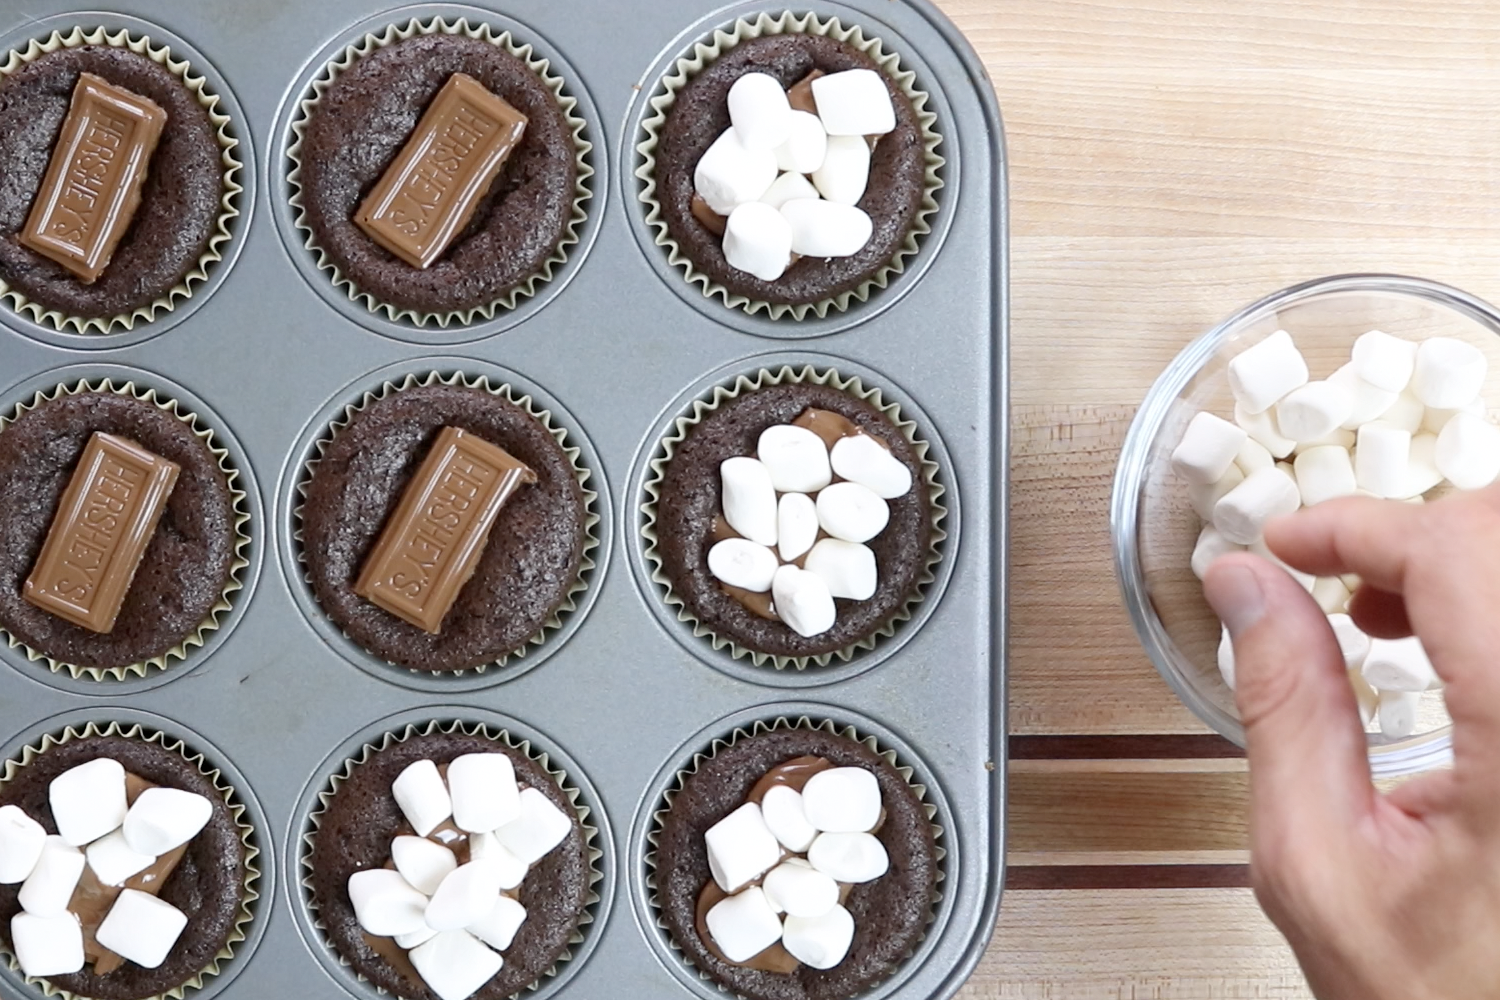 12. Remove from oven. While chocolate is gooey add a few marshmallows on top of each brownie cup. -